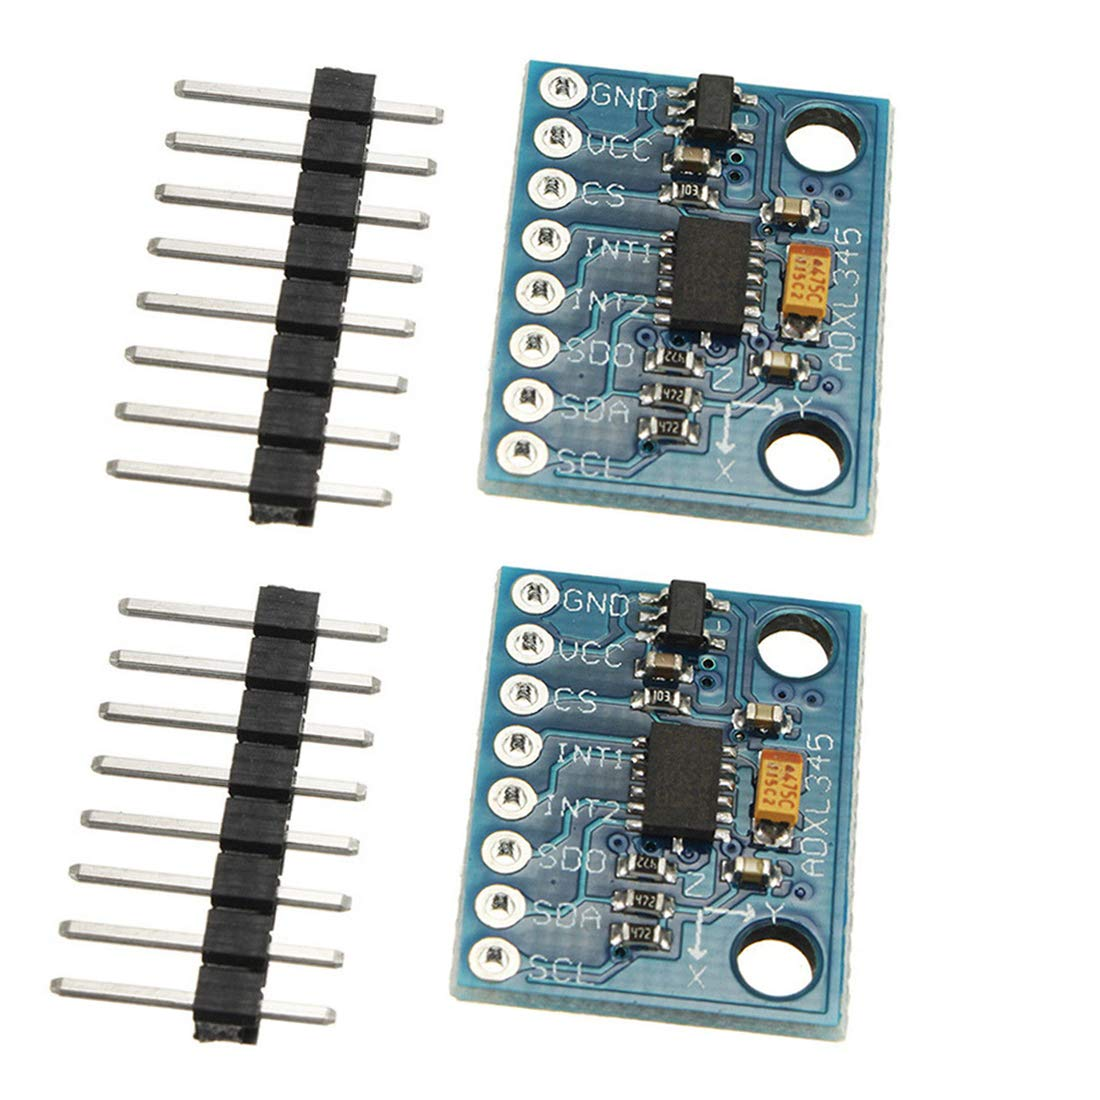 2pcs ADXL345 3-Axis Digital Acceleration of Gravity Tilt Module GY-291 IIC//SPI Transmission for Arduino